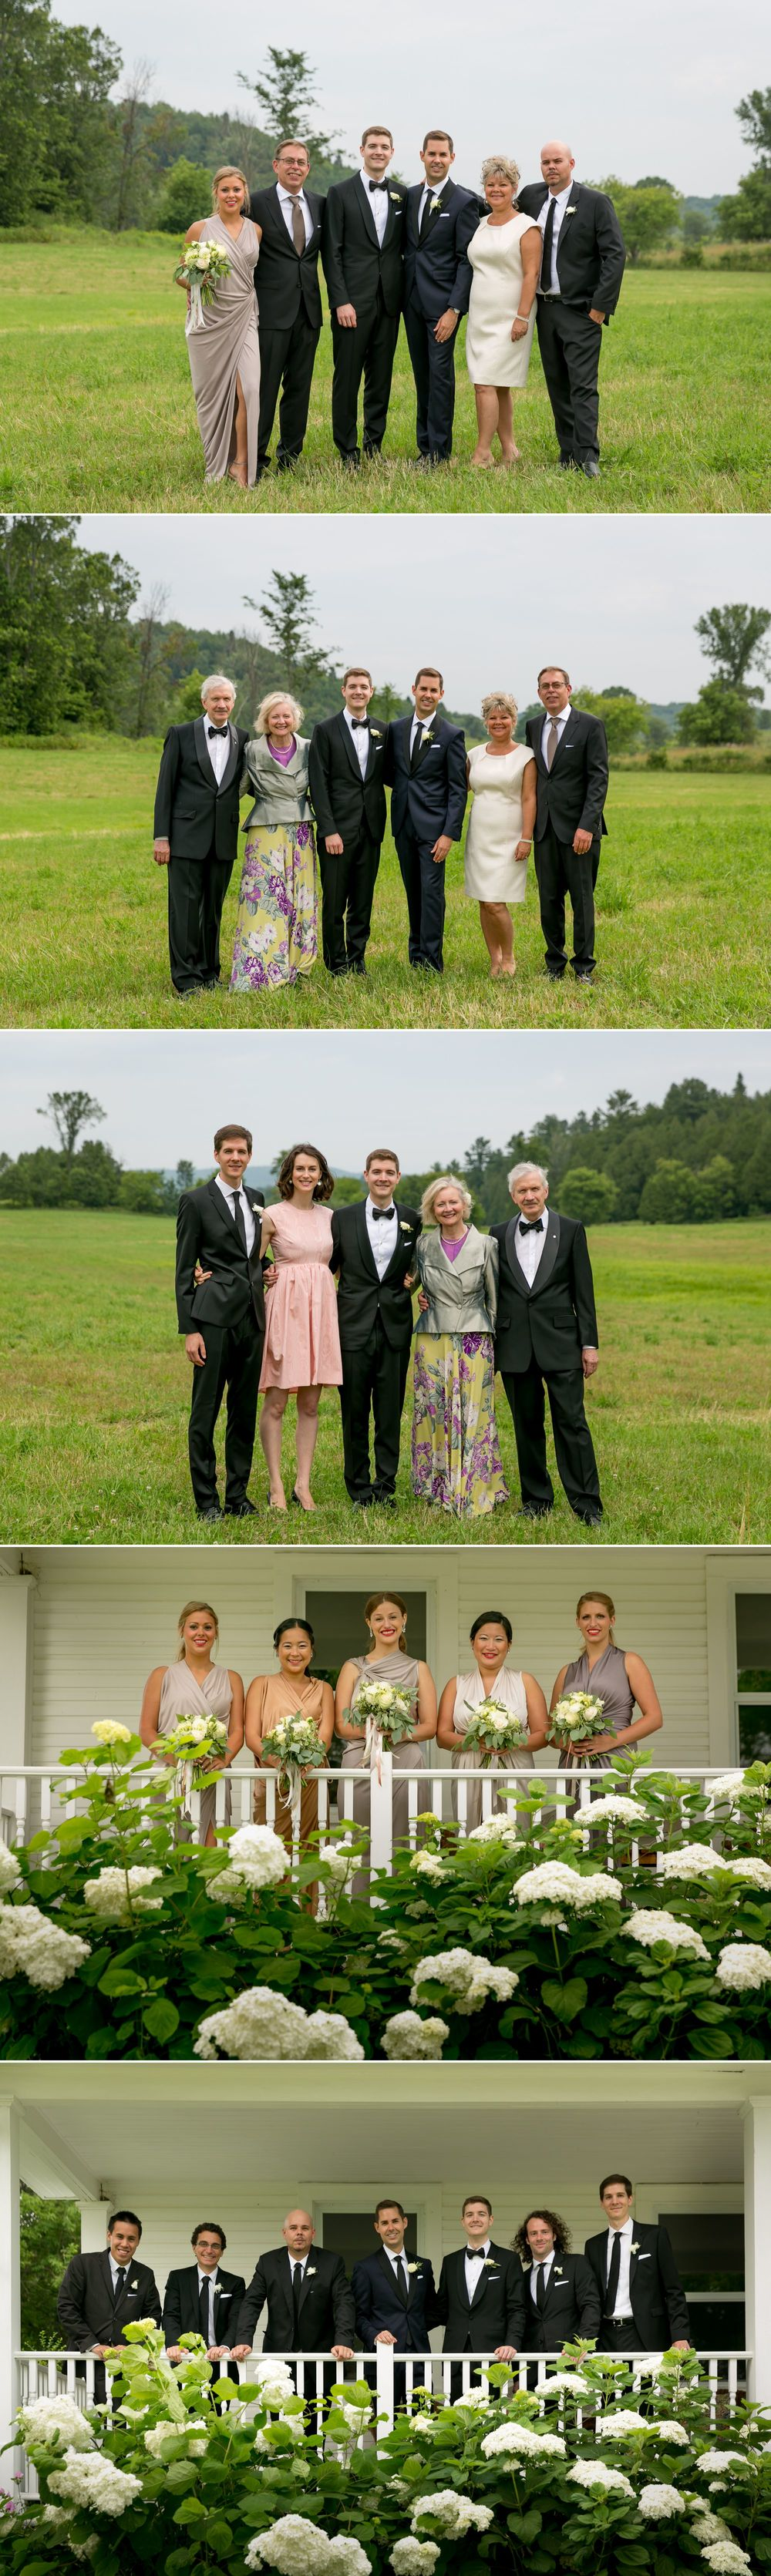 Wedding party photographs at a same sex wedding in Ottawa